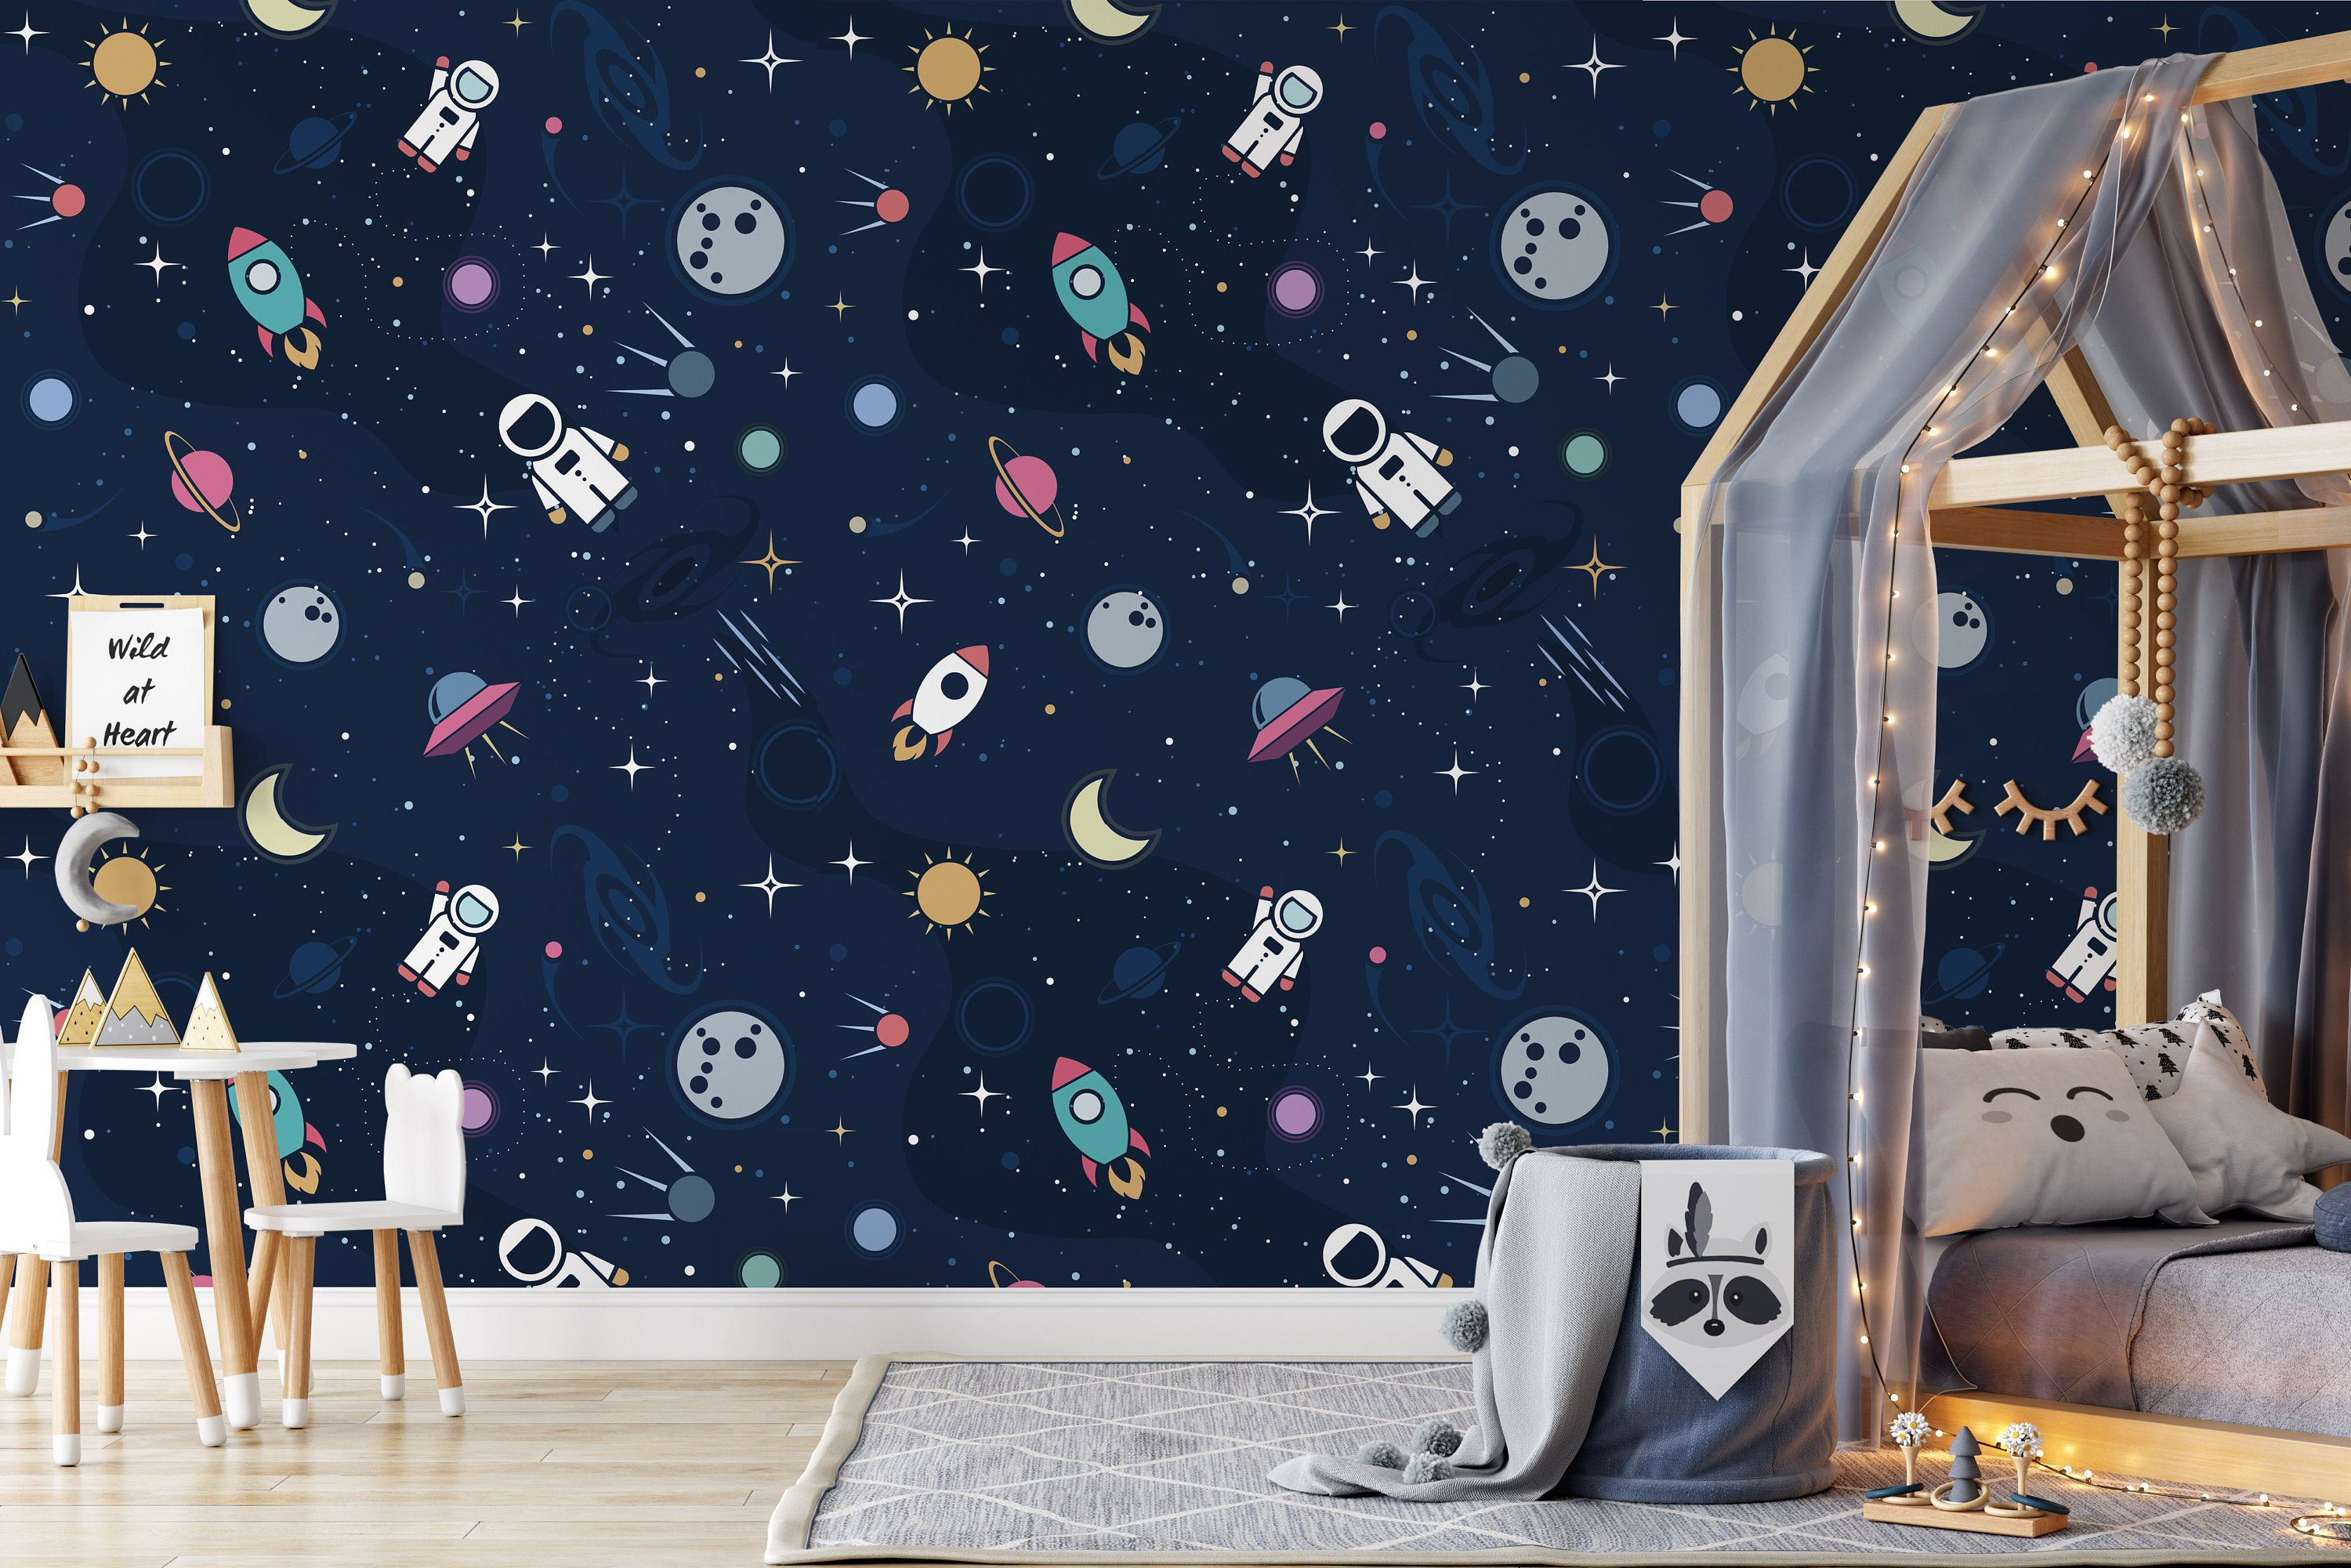 Astronaut Spaceship Rocket Moon Black Hole Funny Wallpaper | Etsy